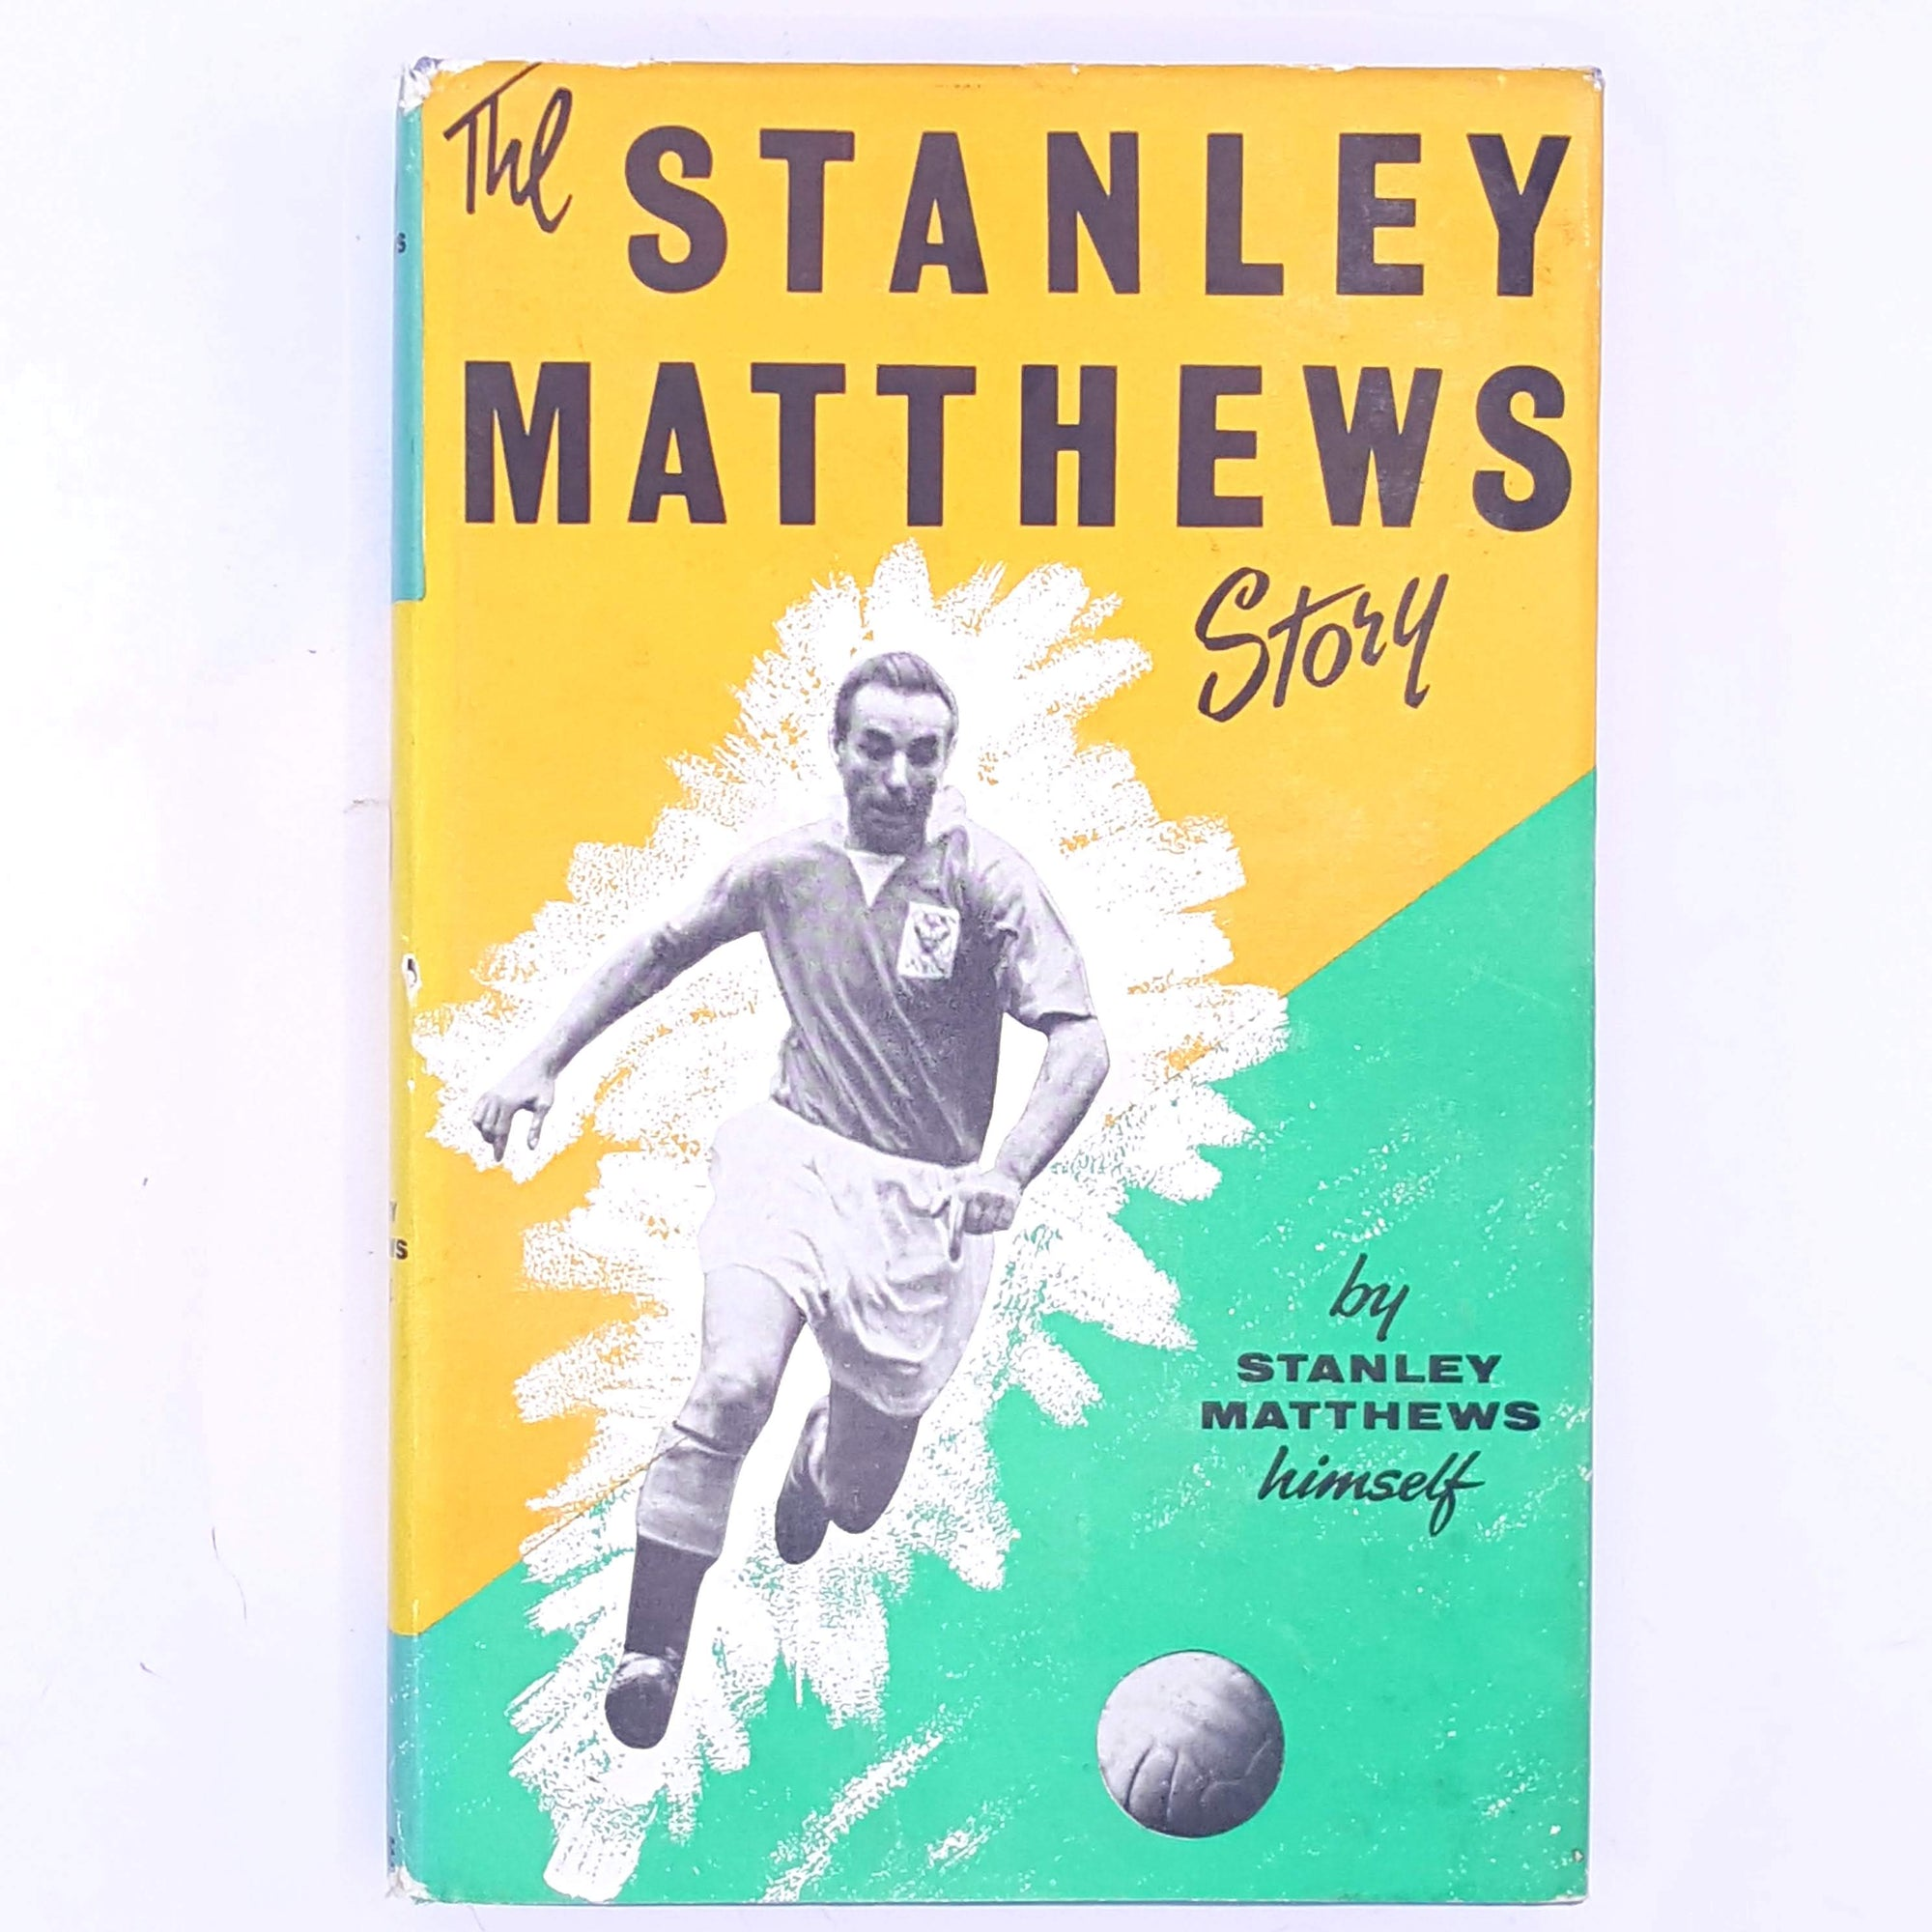 sport-the-stanley-mattews-story-vintage-christmas-gifts-antique-patterned-books-football-country-house-library-classic-old-decorative-soccer-thrift-for-him-for-sports-fans-